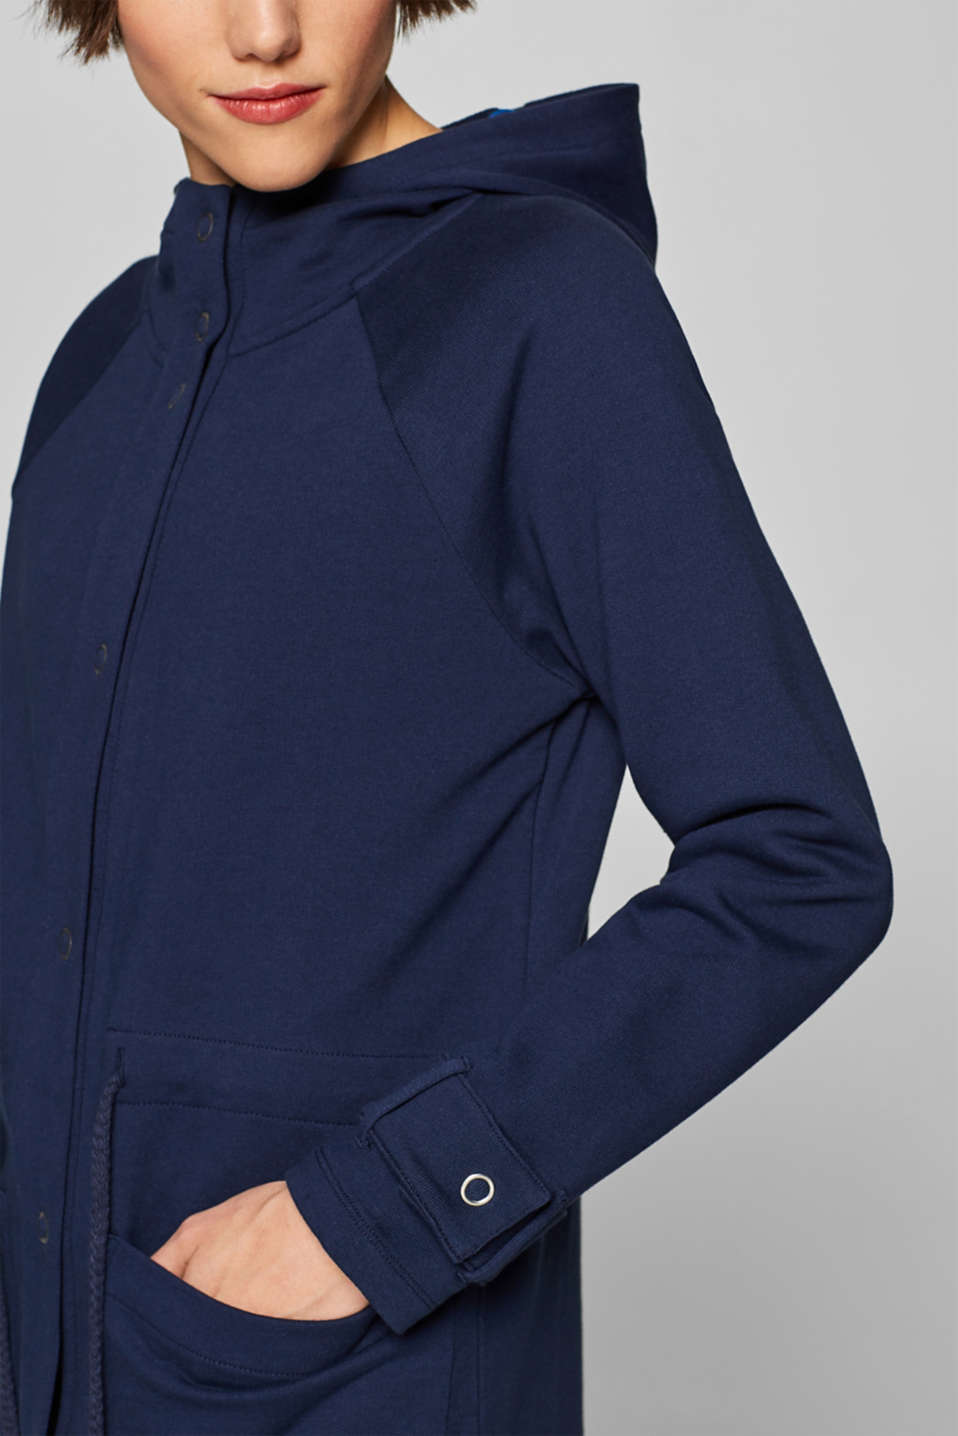 Sweatshirt parka with hood, 100% cotton, NAVY, detail image number 1